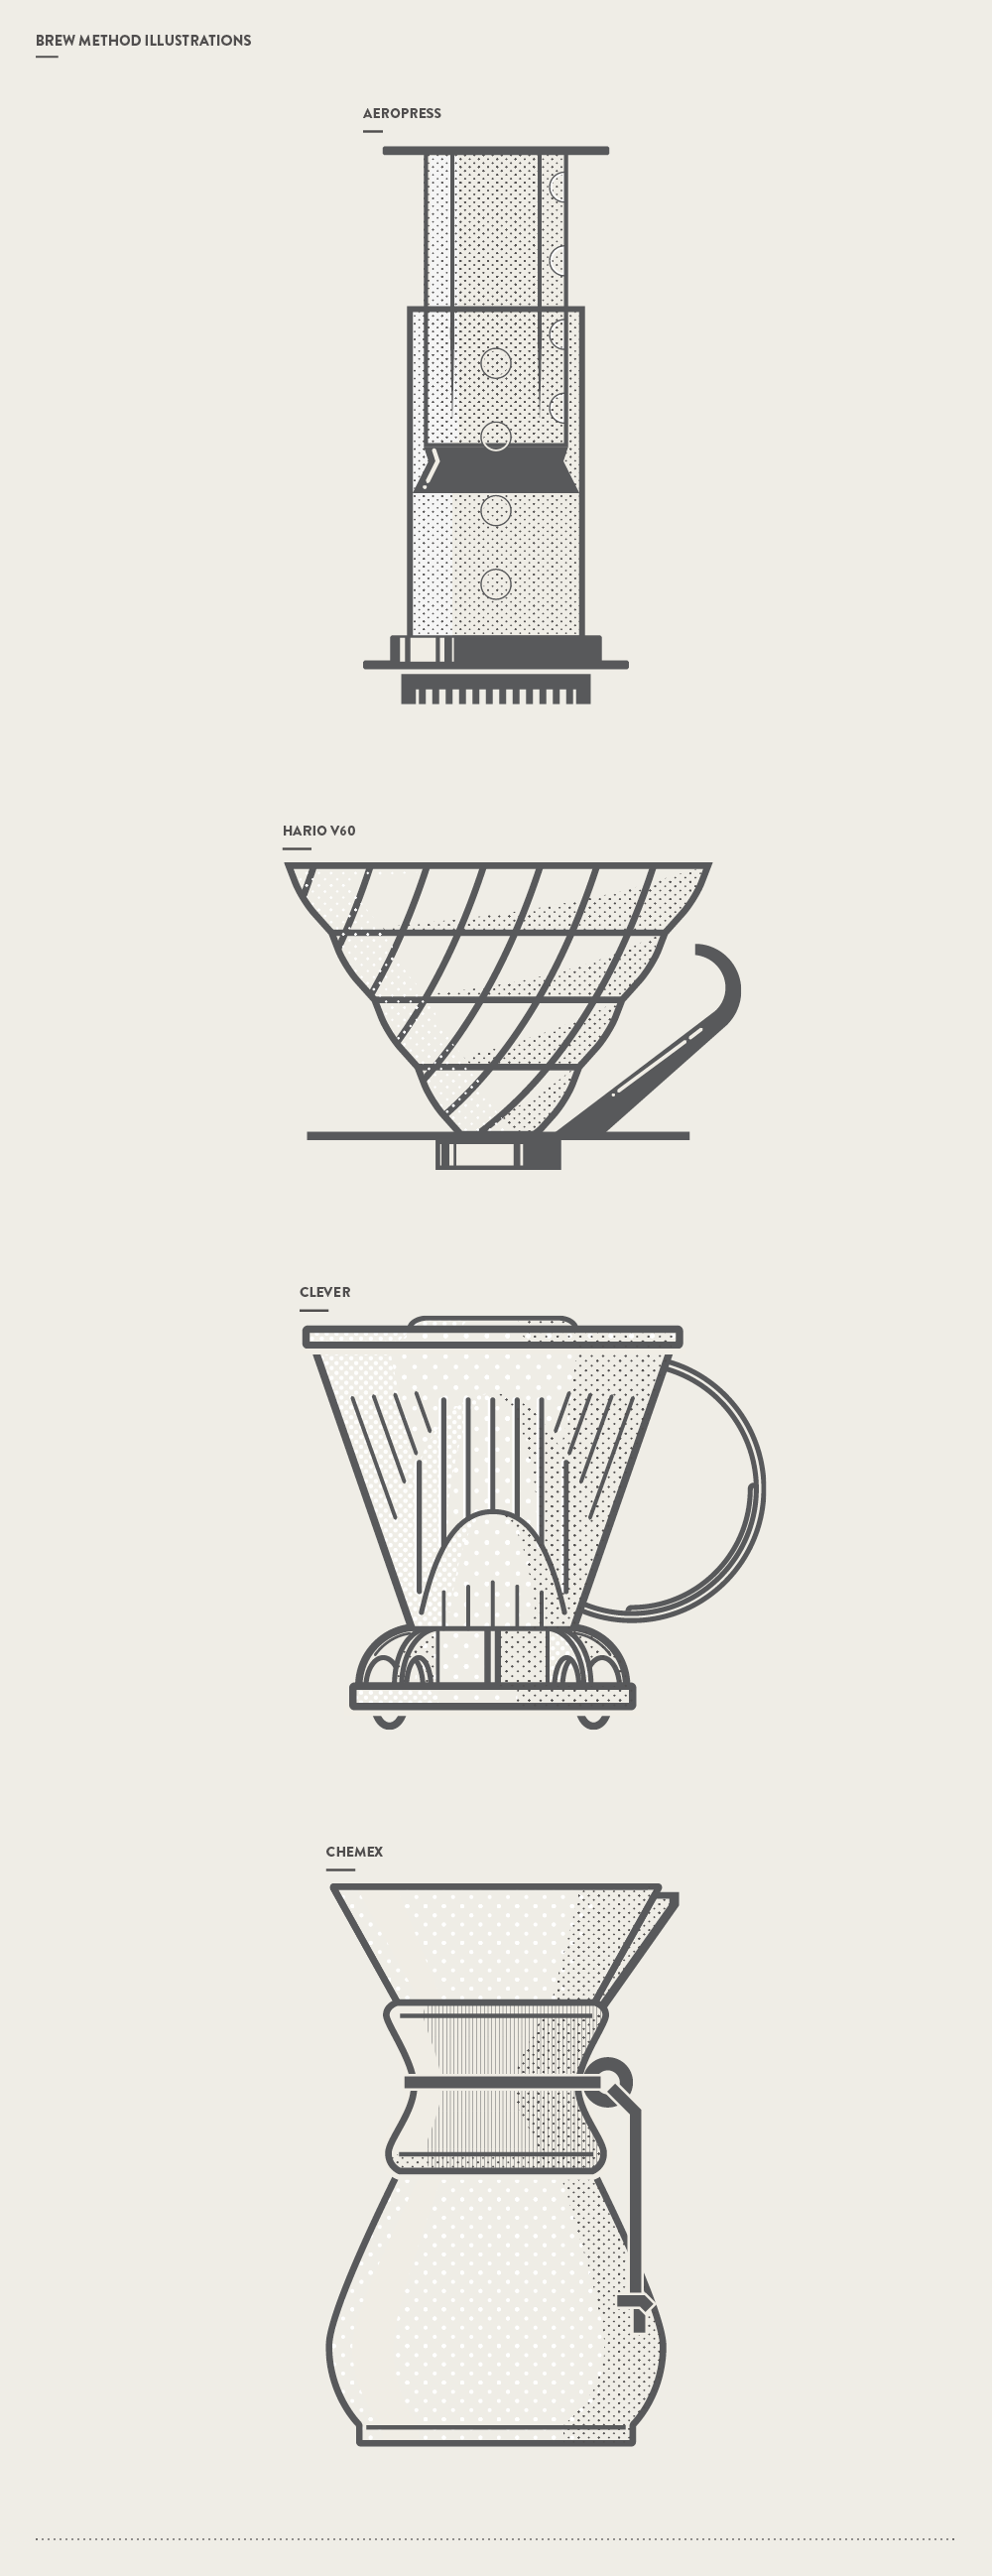 brew method illustrations for slate coffee roasters | blake